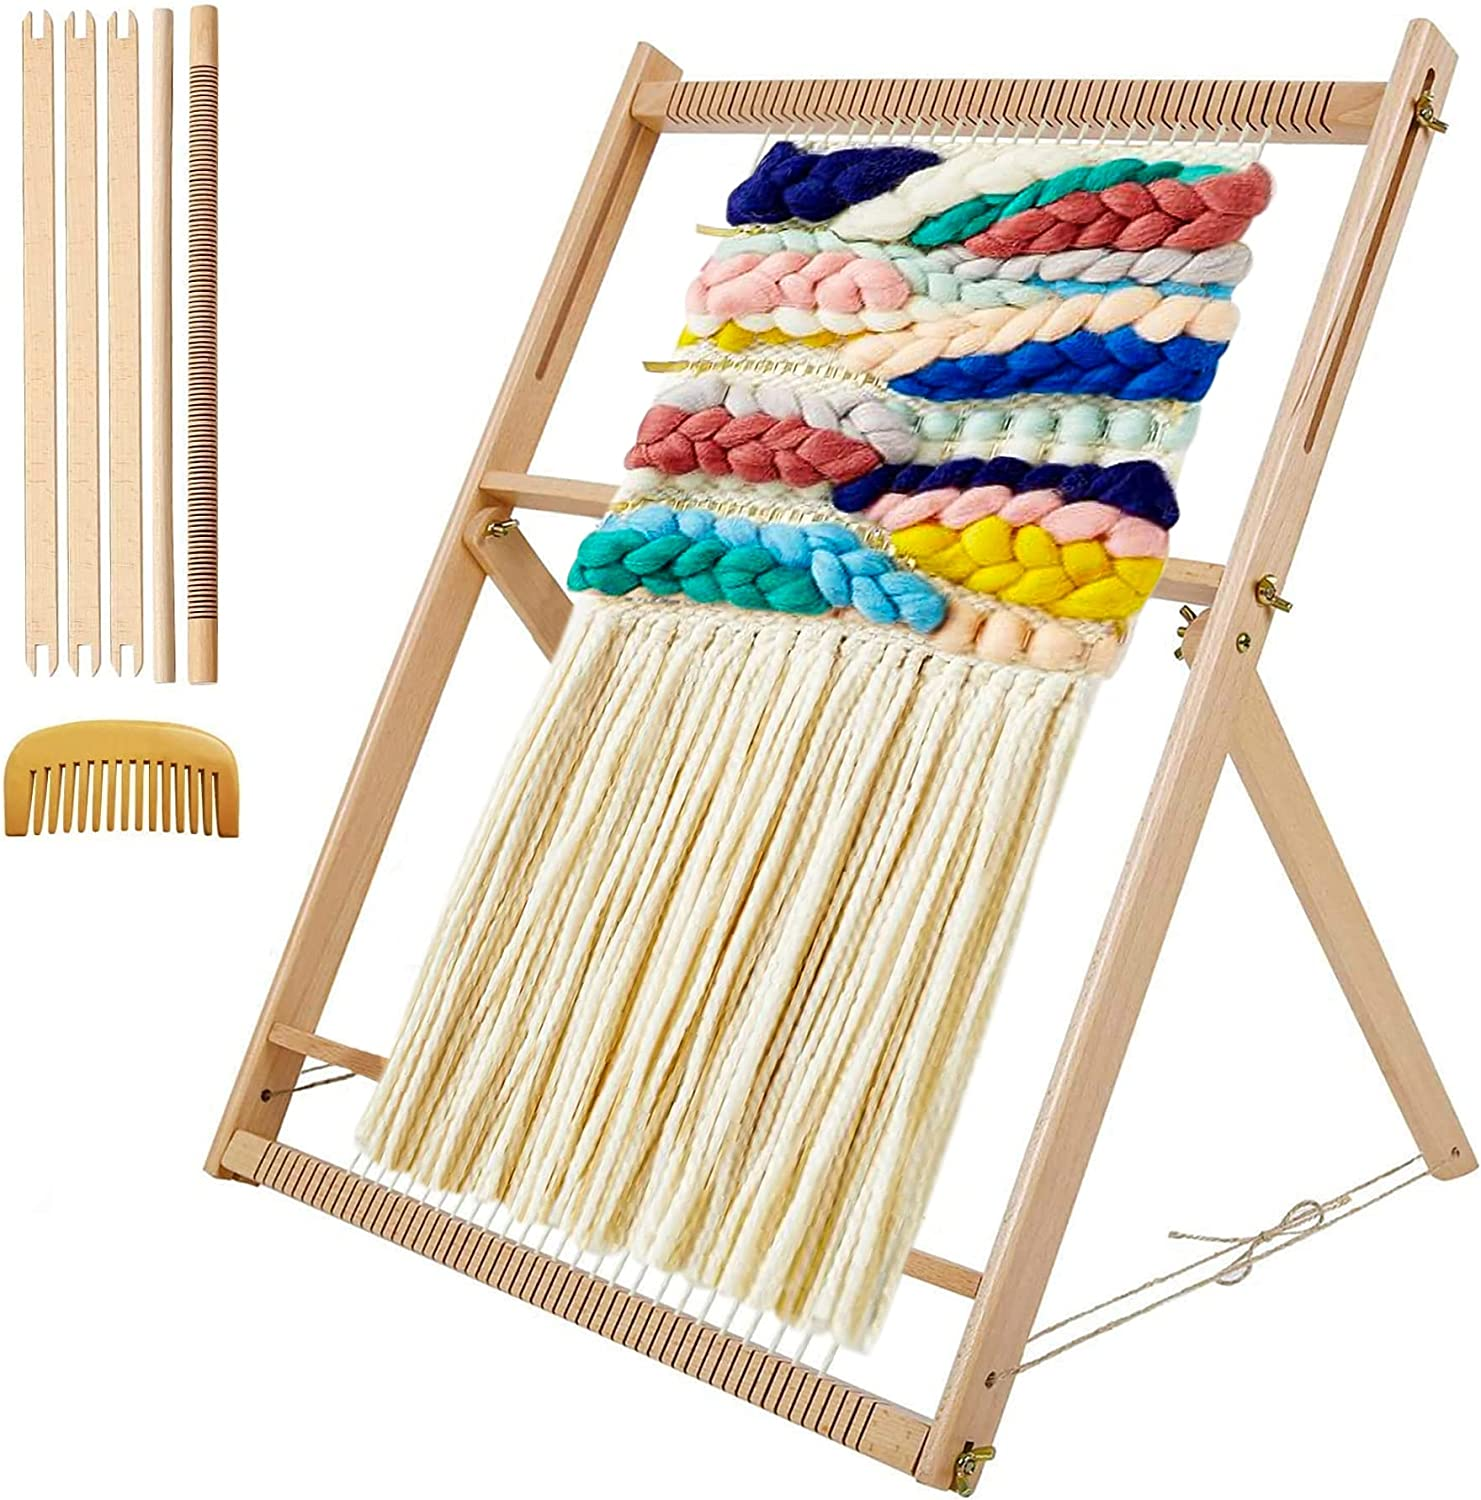 Tapestry Weaving Loom Multi-Craft with Adjustable Stand Mother's Day Gift Weaving Loom DIY Hand-Knitted Machine Woven Set for Beginners and Children 23.6 x 18.5inch